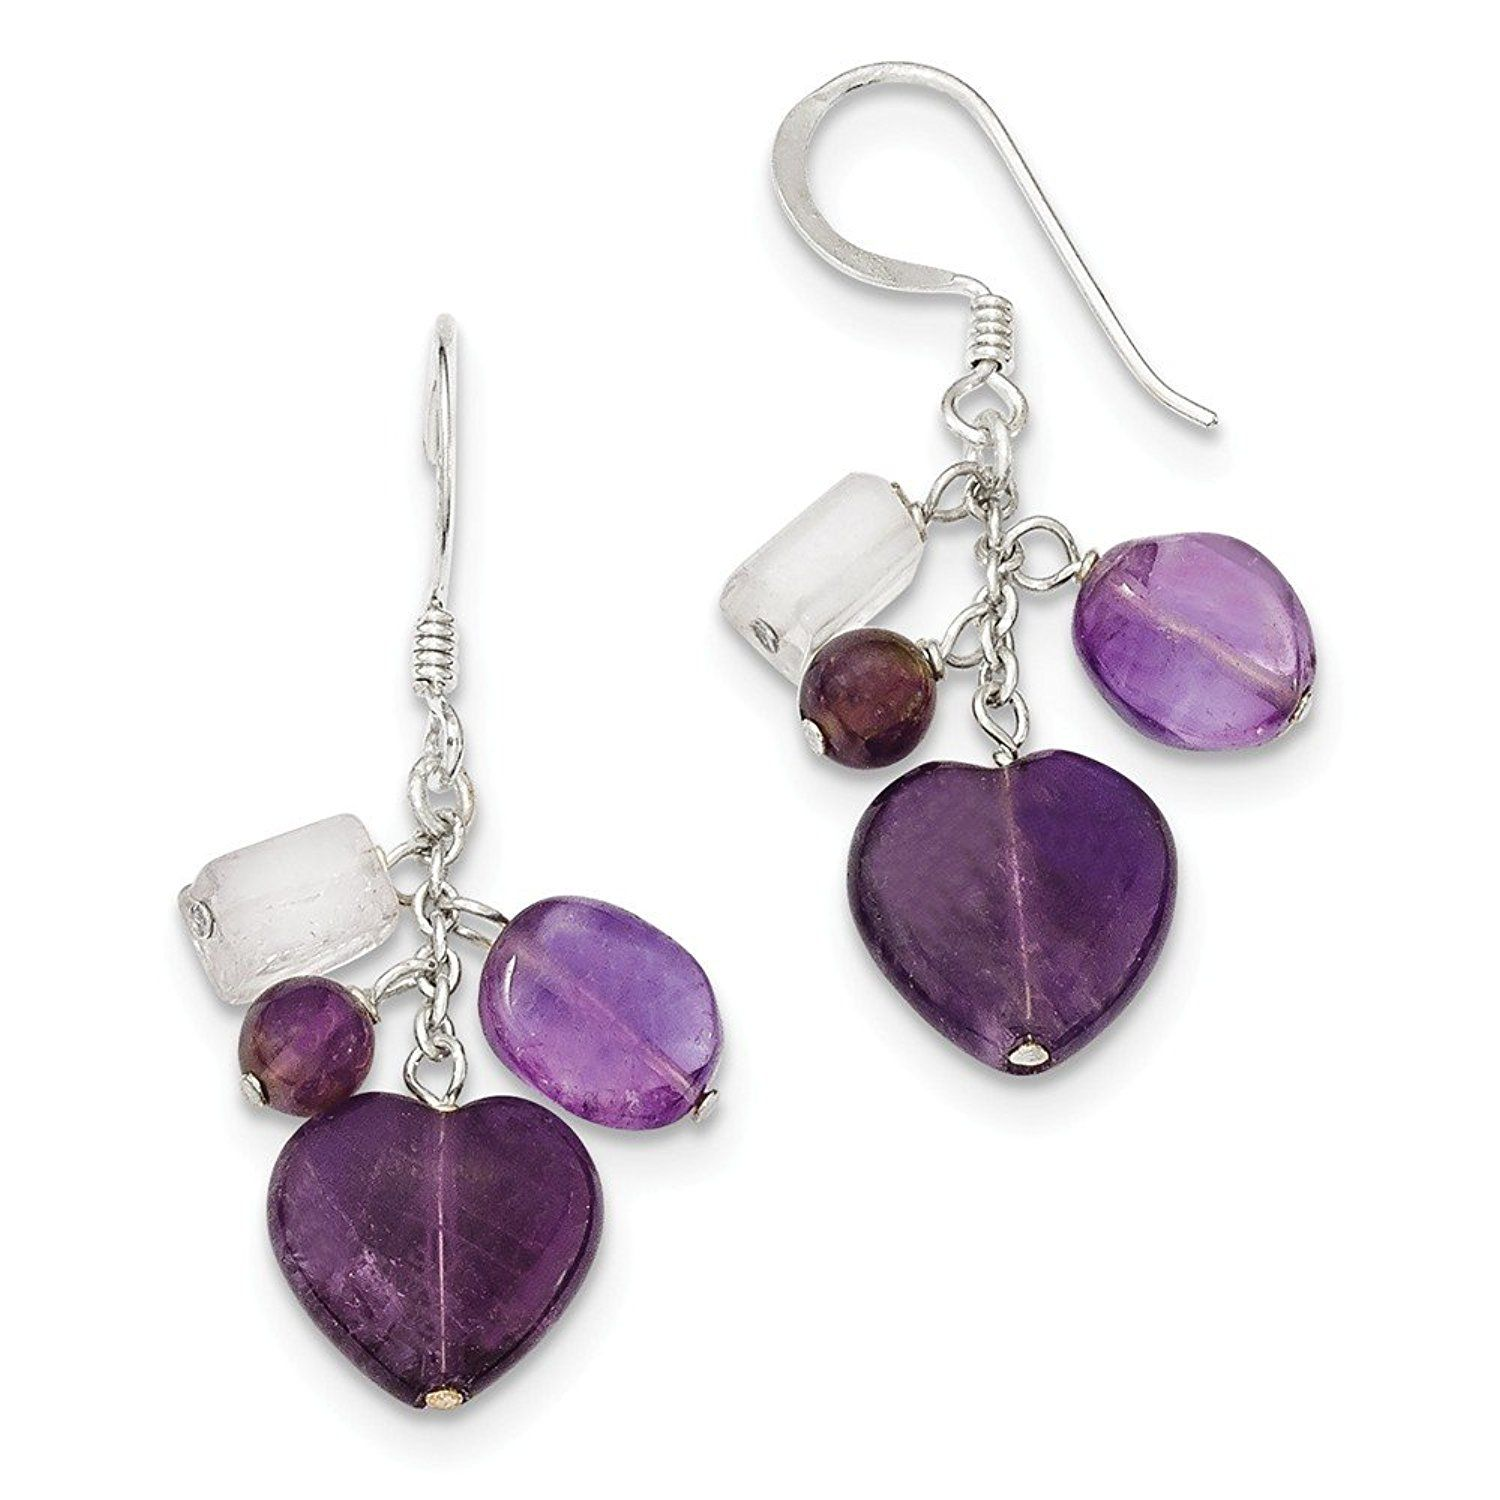 Ice carats 925 sterling silver purple amethyst heart drop dangle ice carats 925 sterling silver purple amethyst heart drop dangle chandelier earrings love fine jewelry gift arubaitofo Choice Image